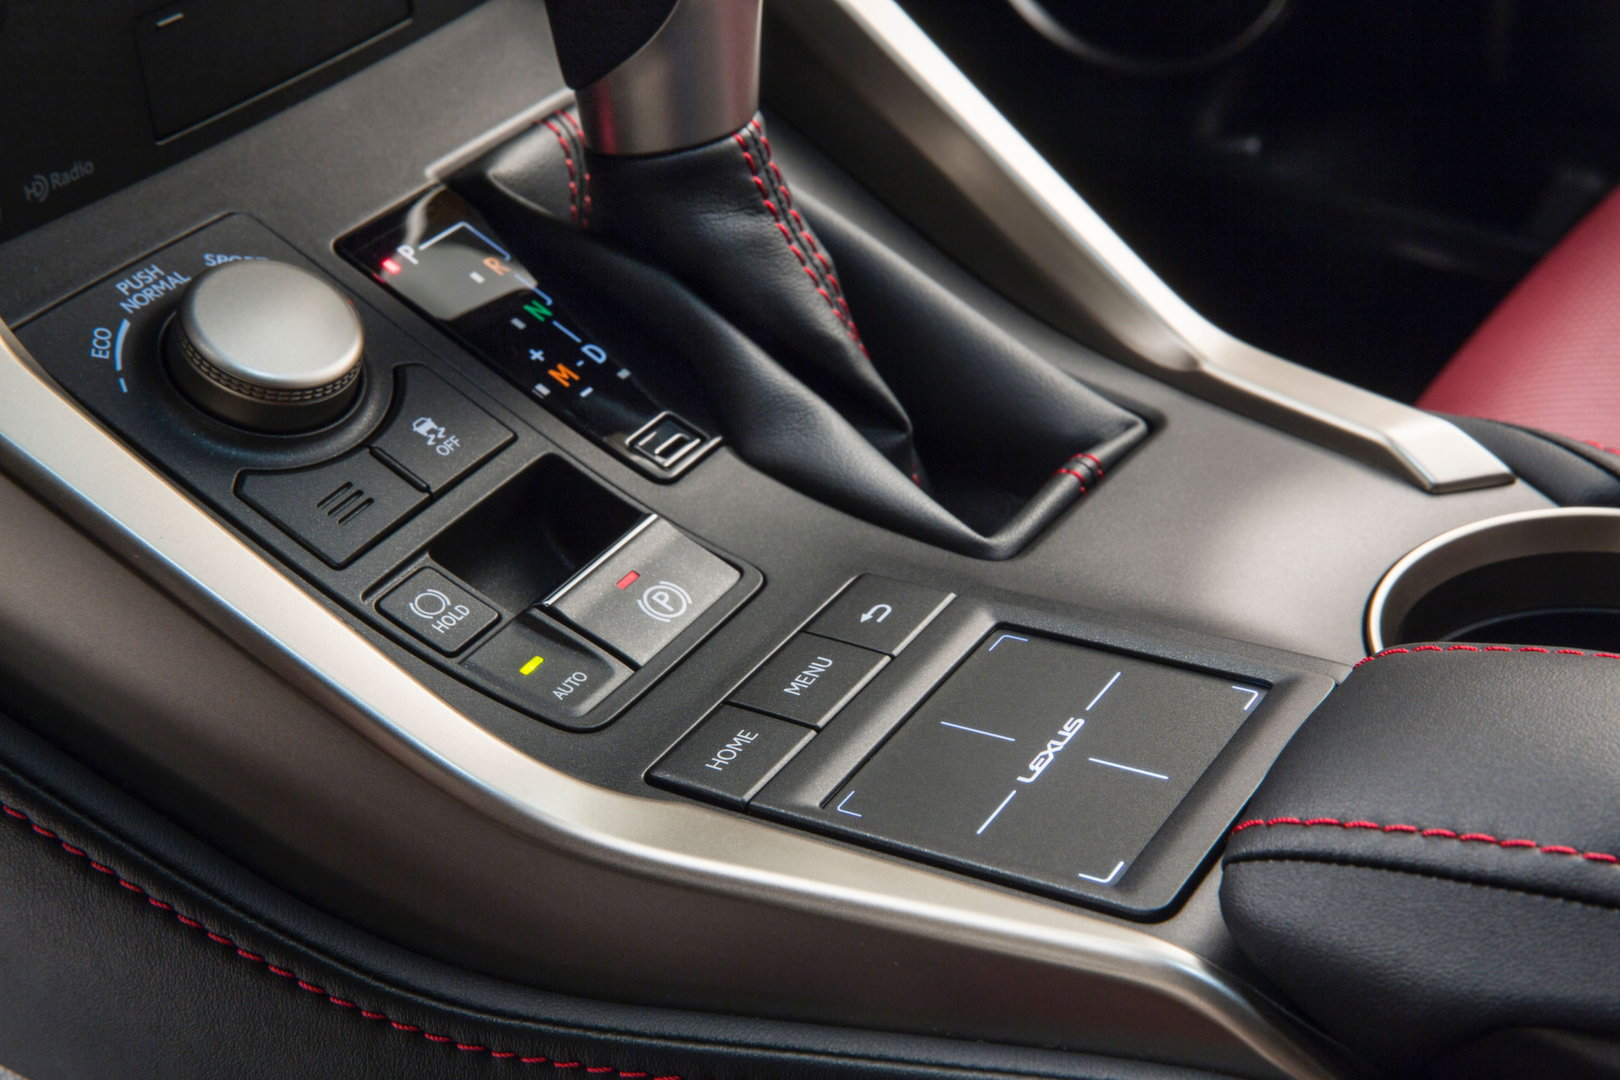 As Owners Of The Nx How Do You Like Lexus New Remote Touch Interface Rti Touchpad An Input Device Vote And Comment